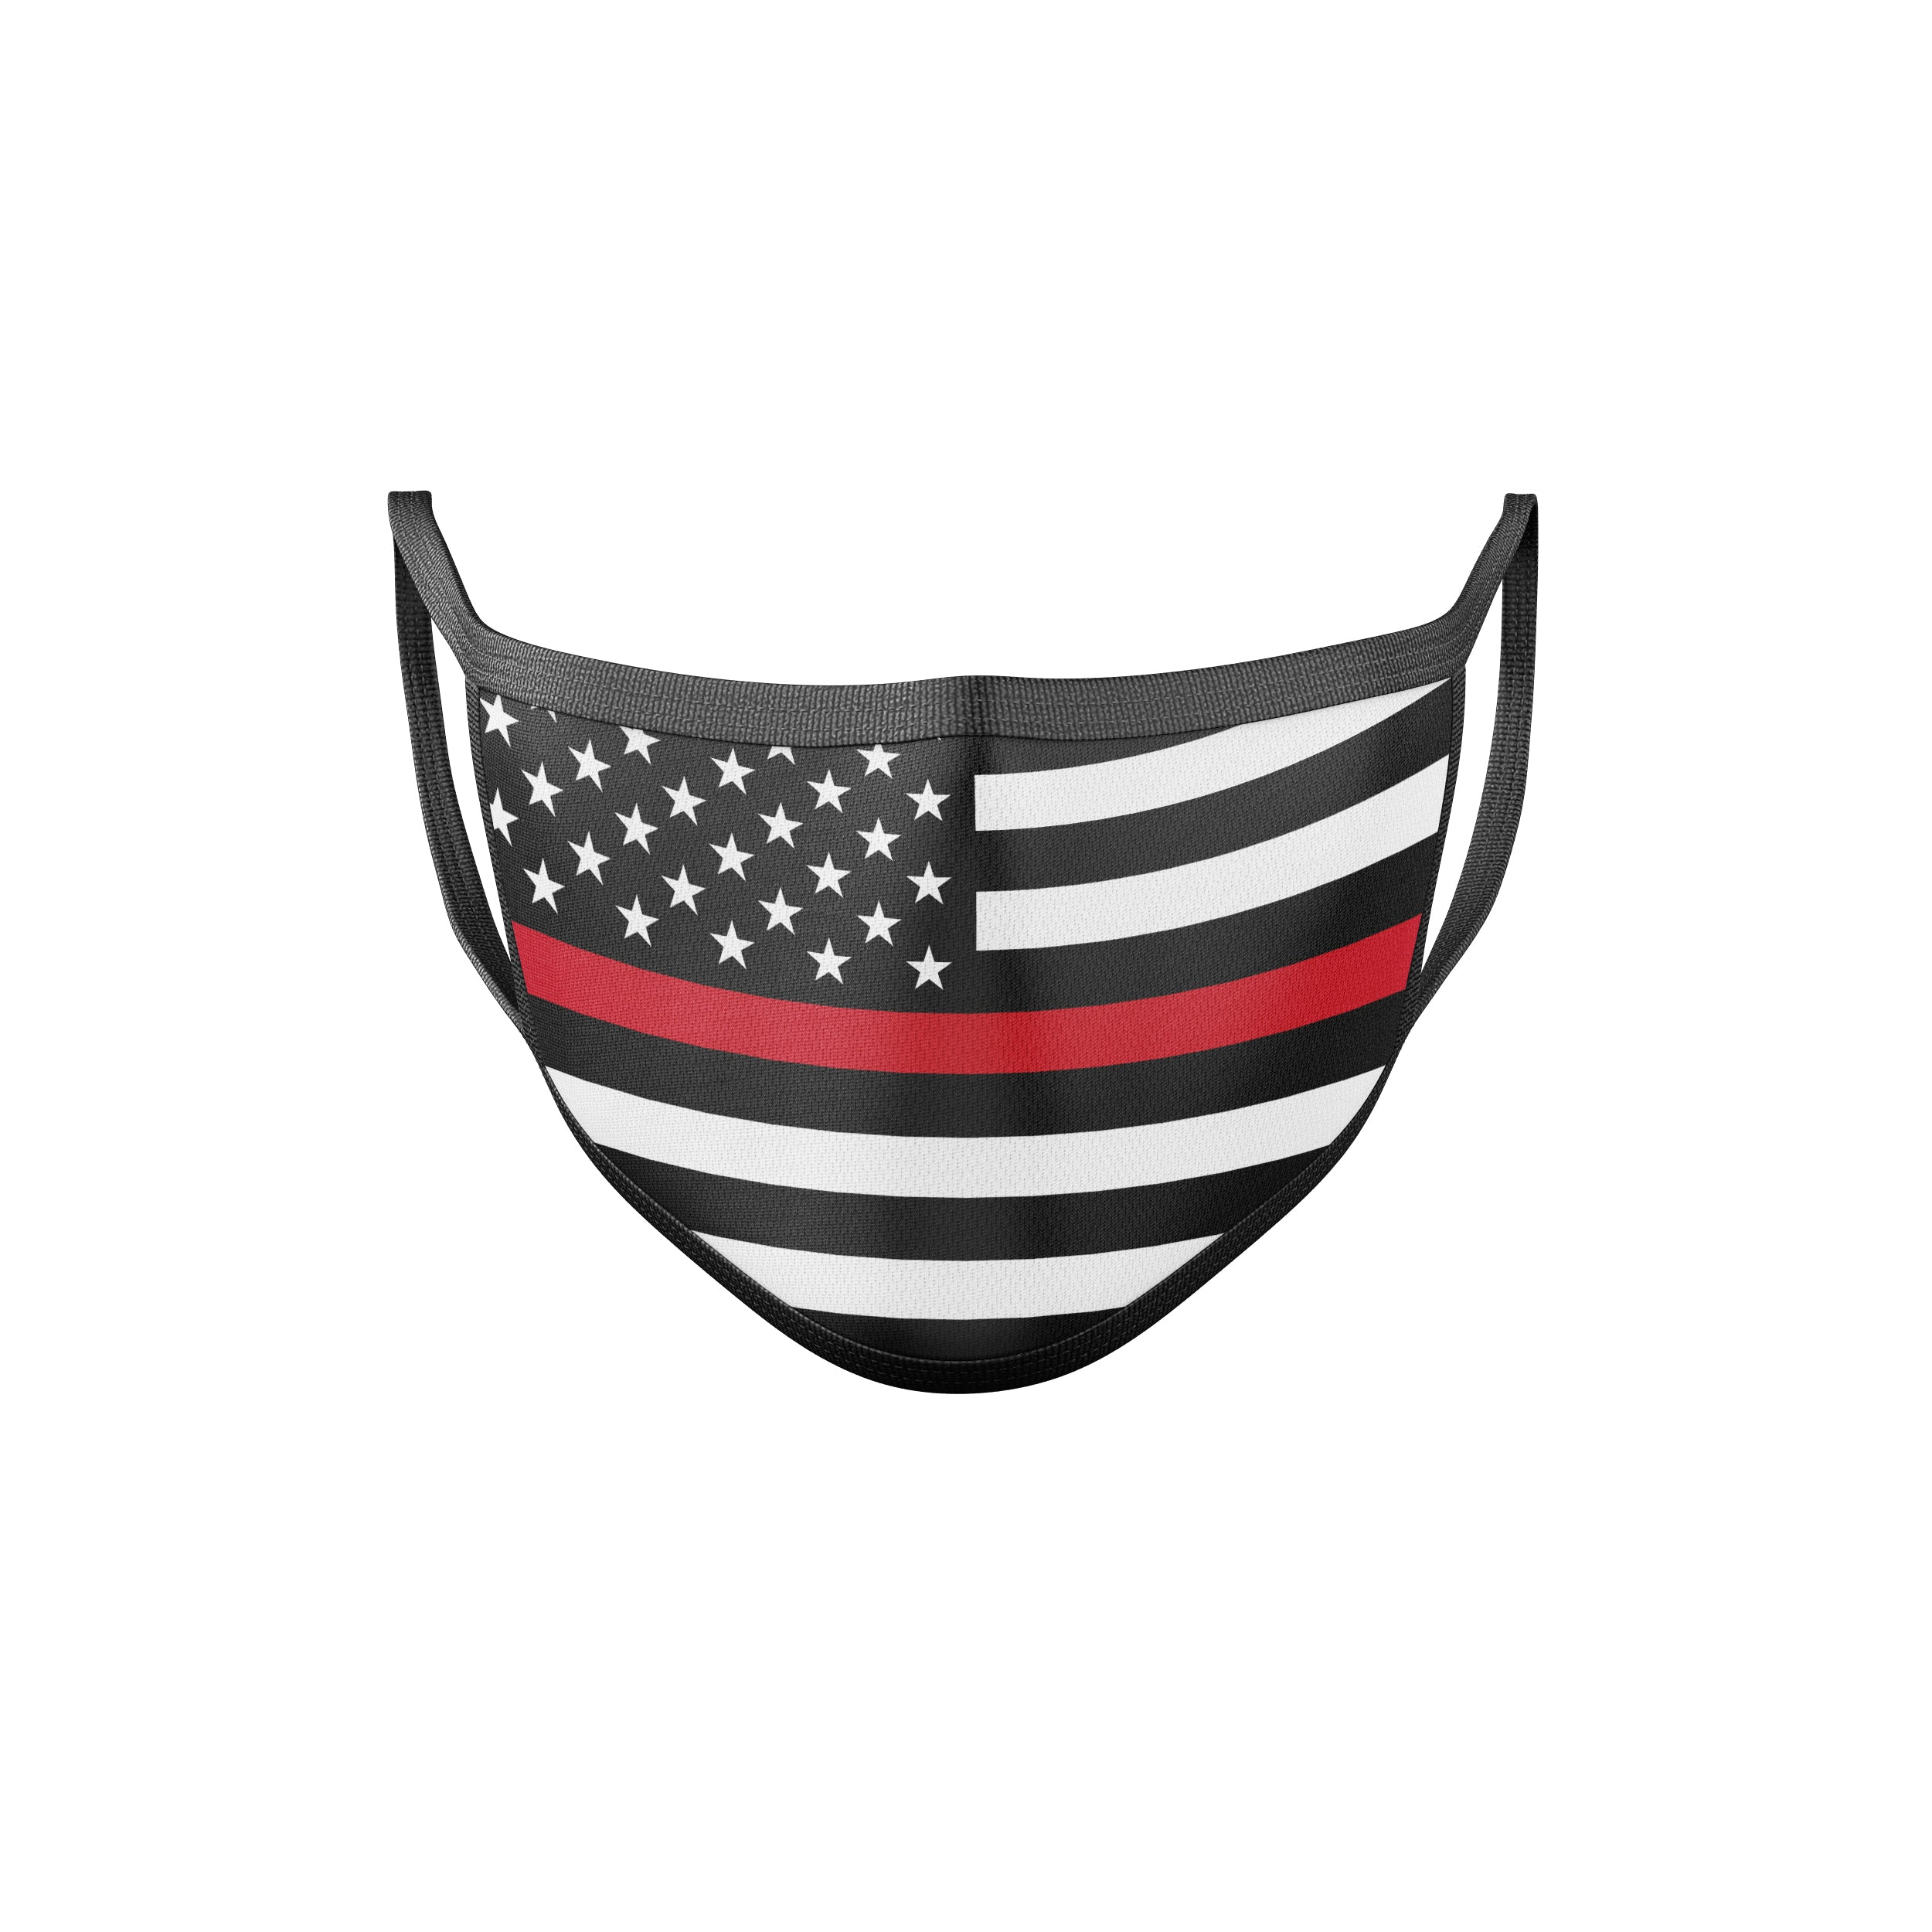 Patriotic Fire Department Face Mask